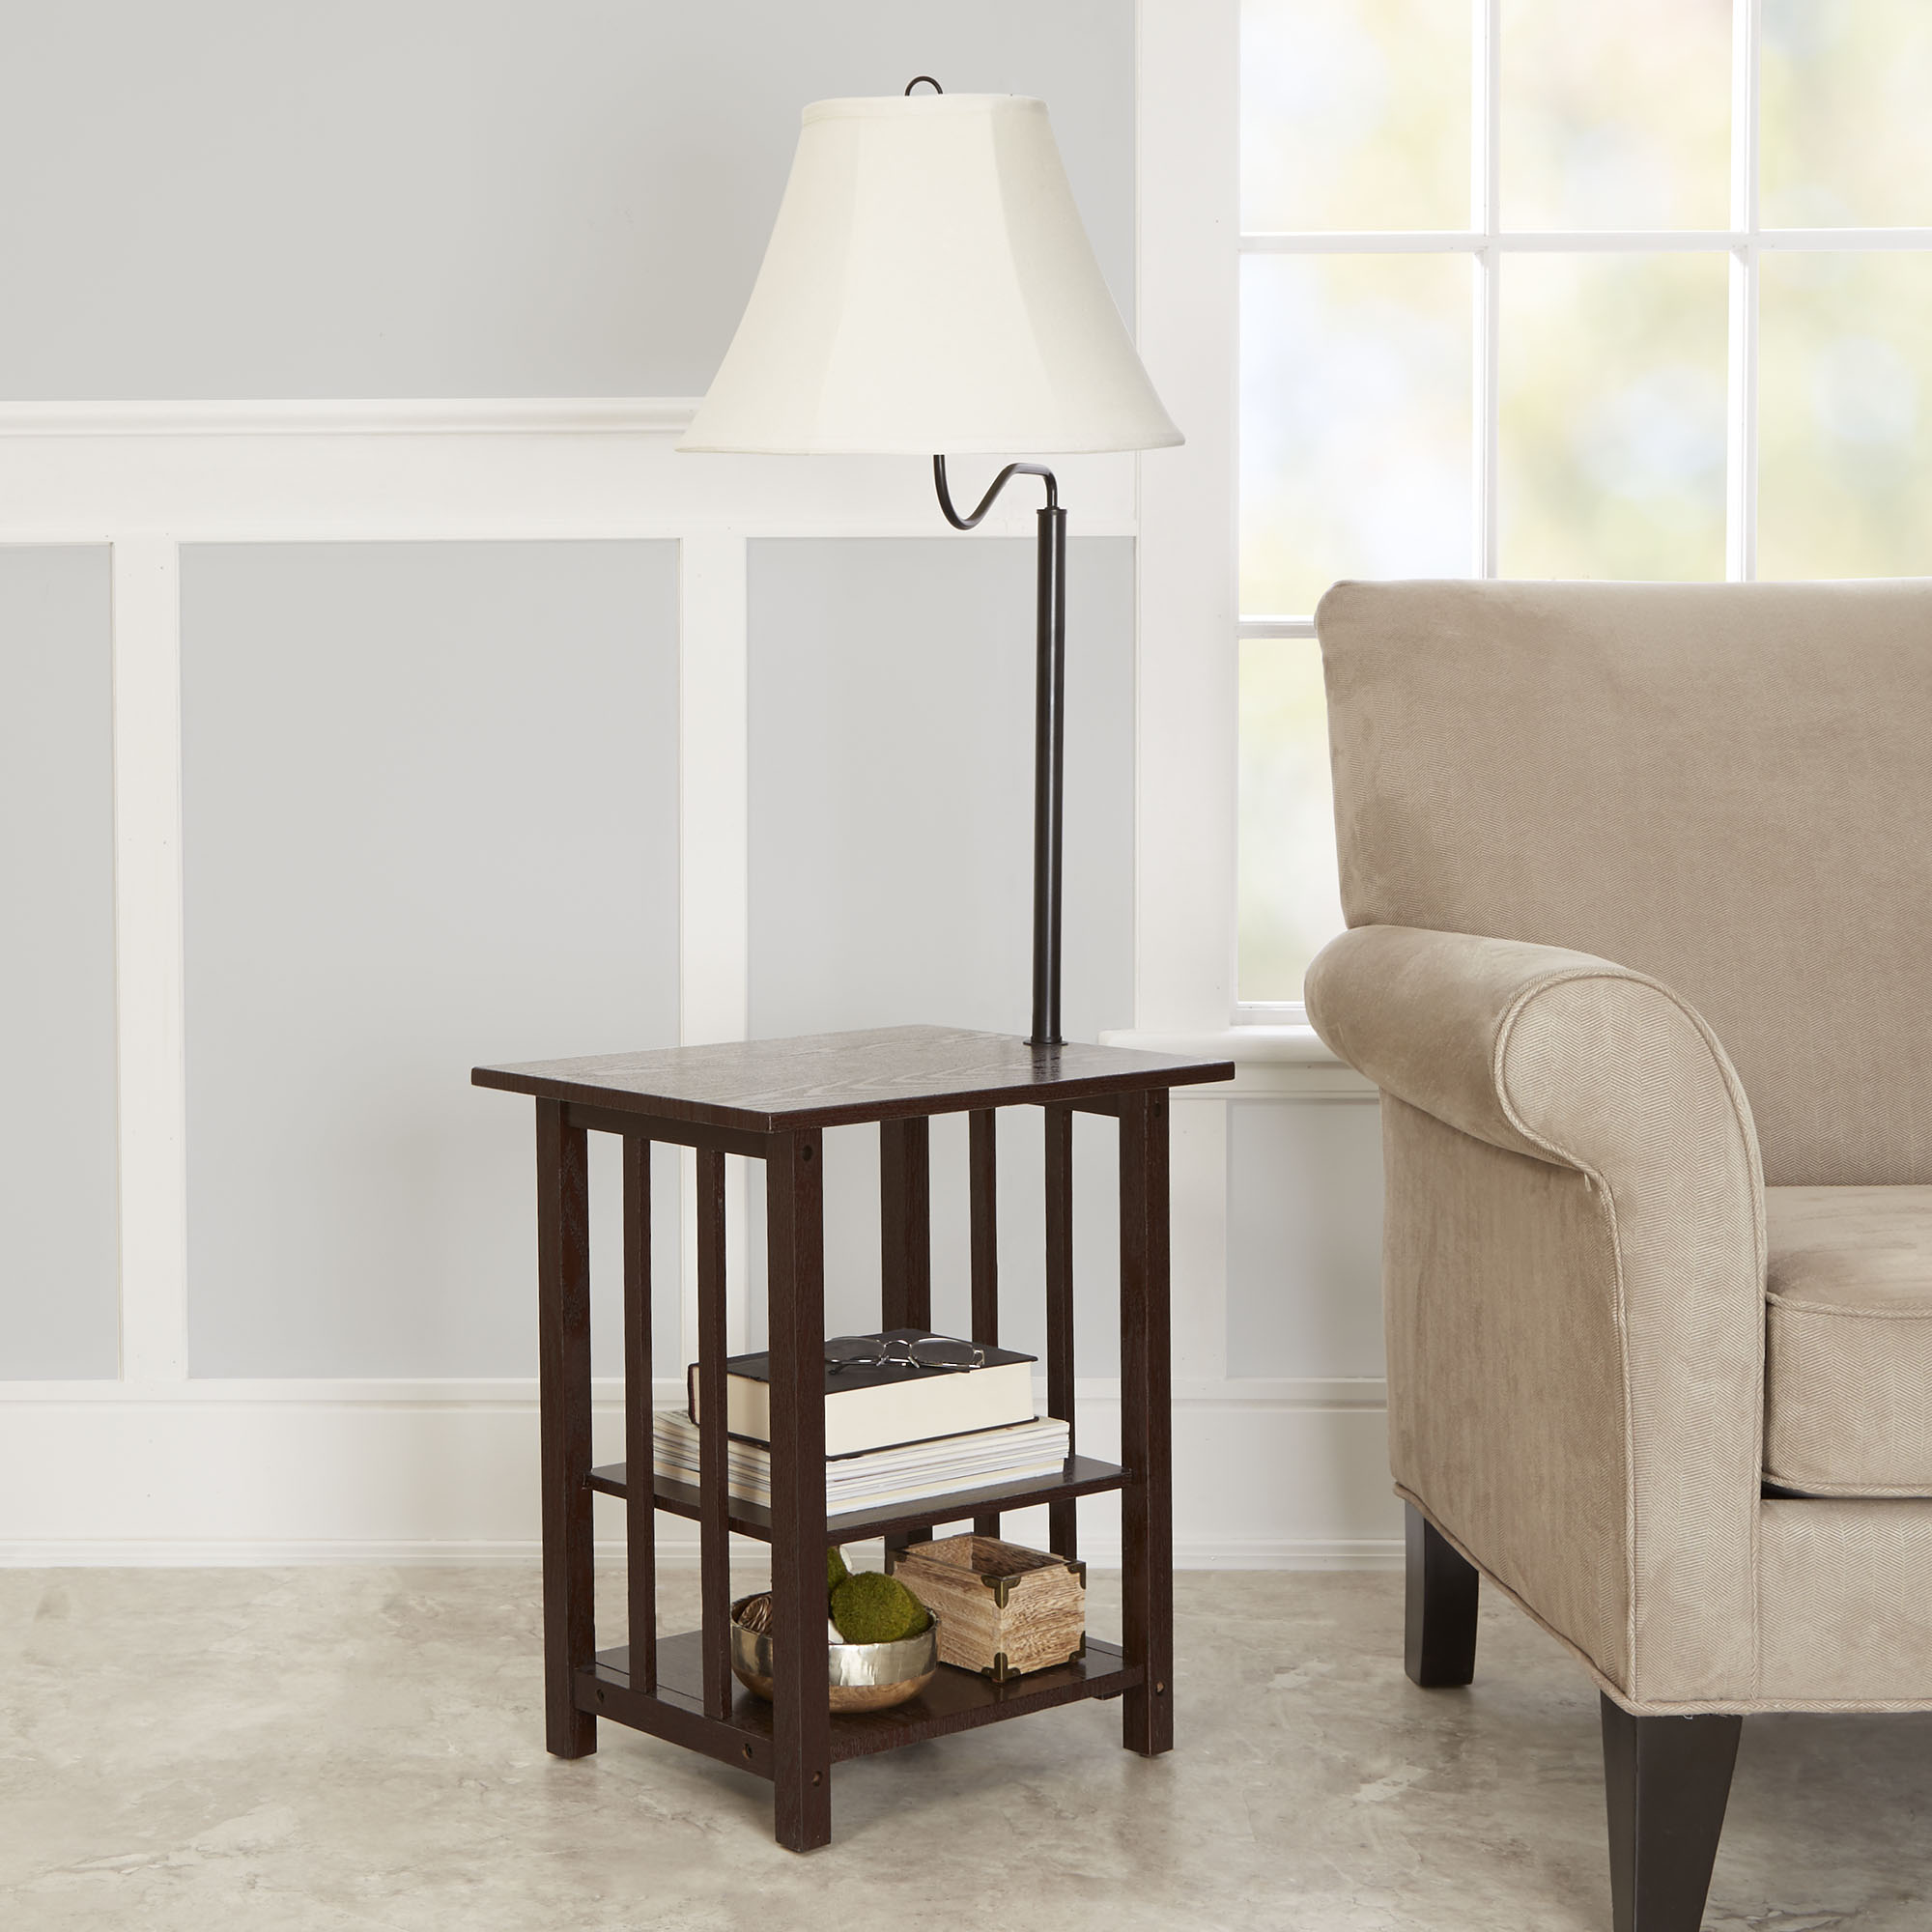 Better Homes U0026 Gardens 3 Rack End Table Floor Lamp, Espresso Finish